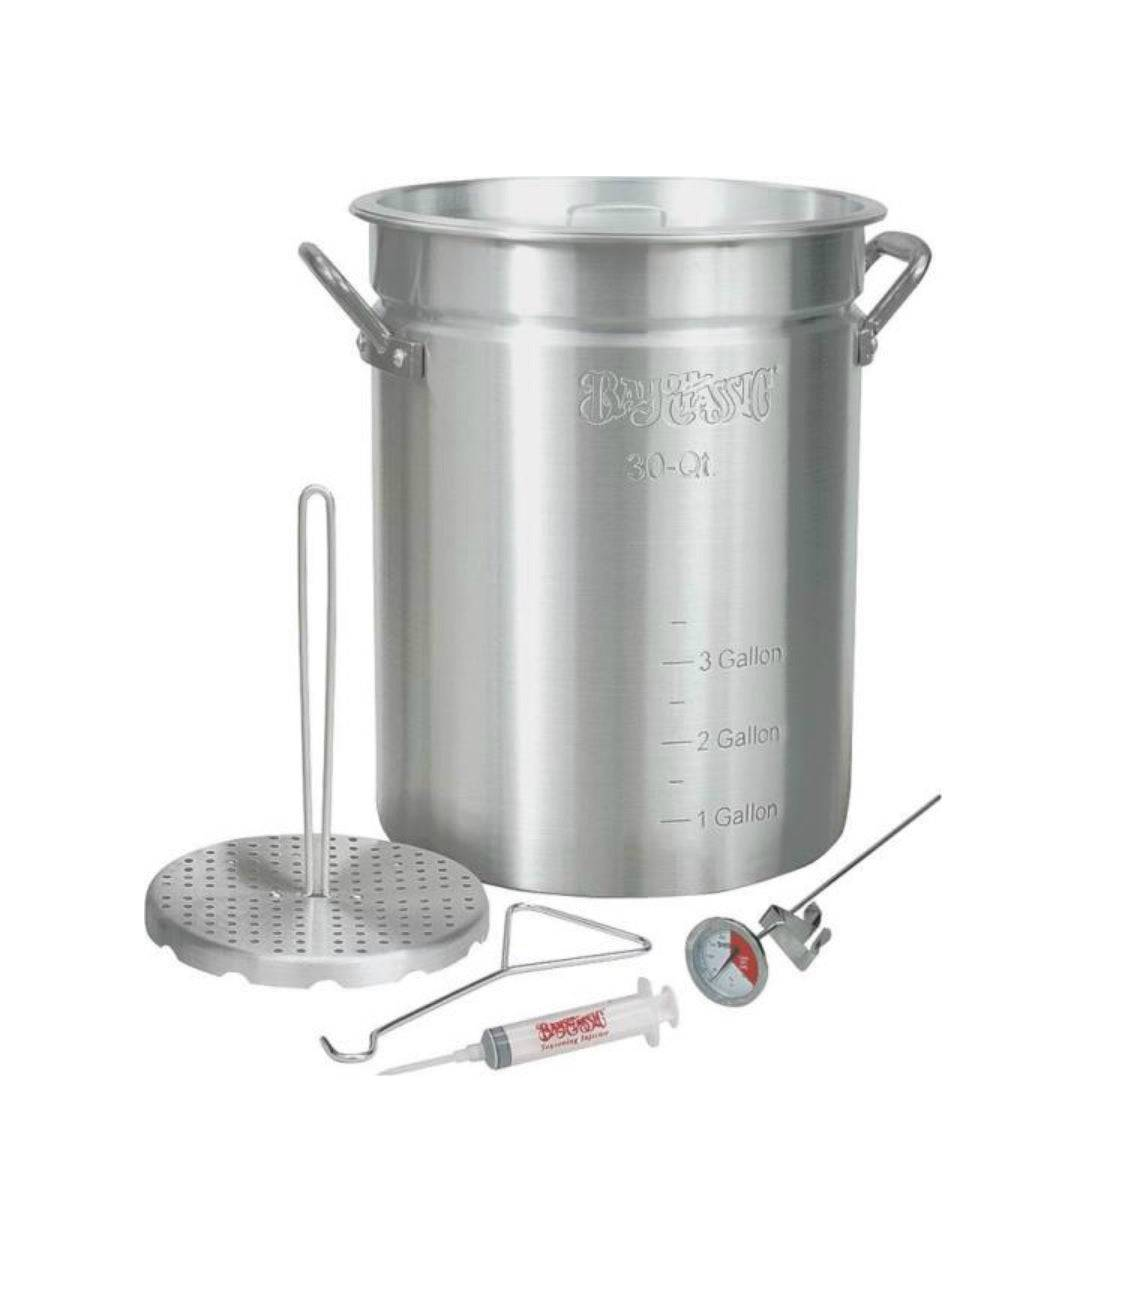 Bayou Classic 3025 Turkey Fryer Pot With Accessories, 30 Quart